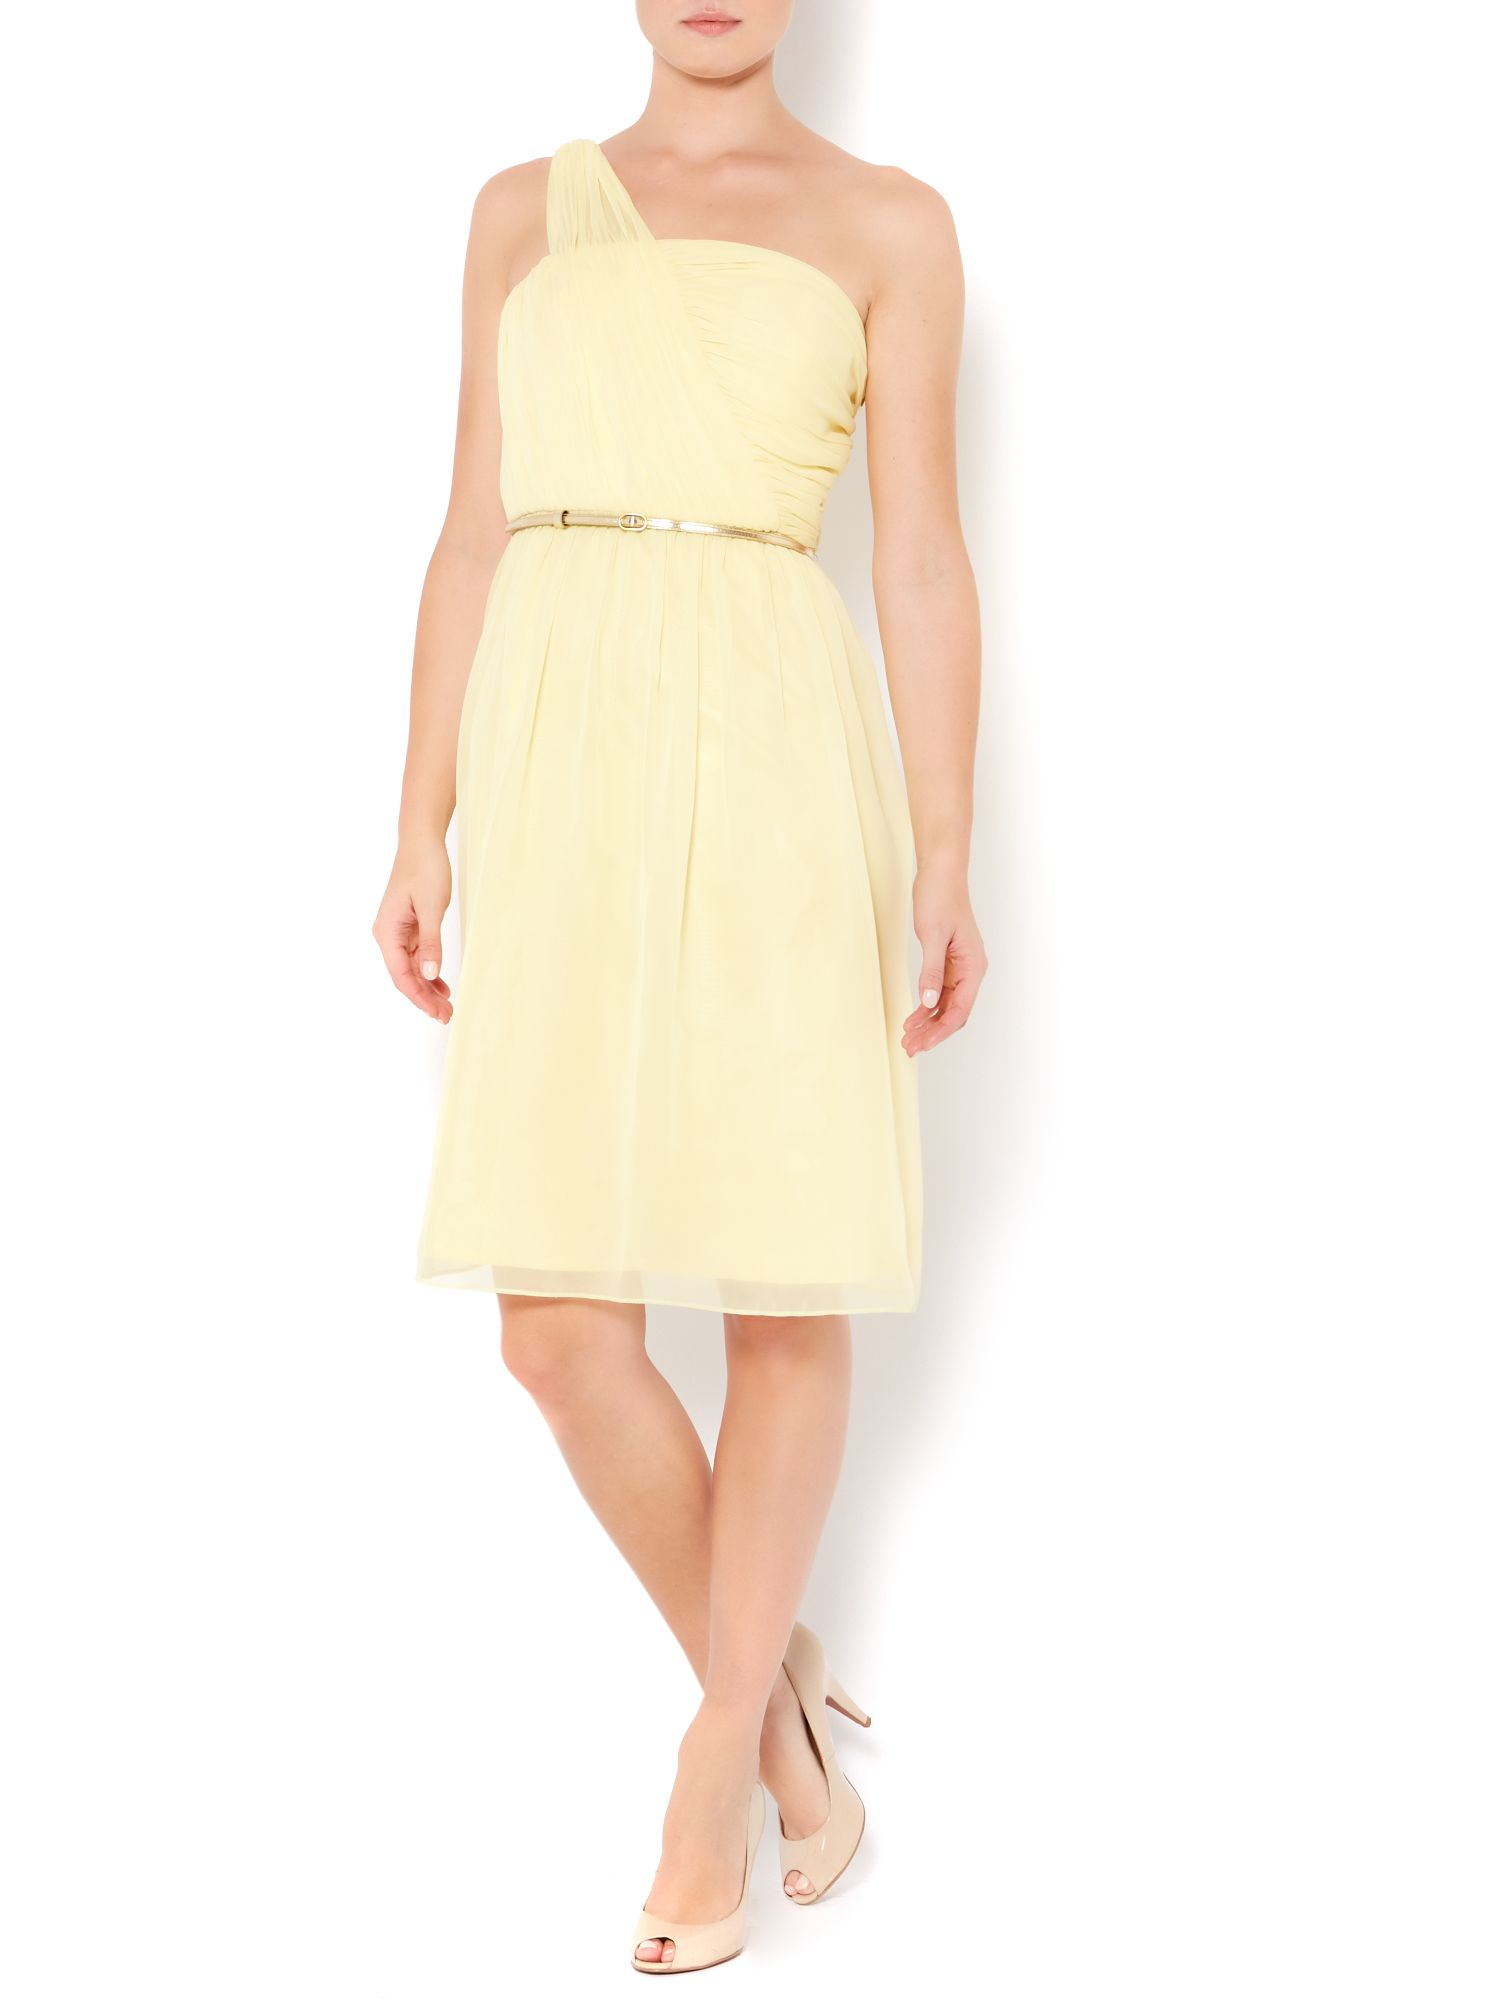 Chiffon one shoulder dress